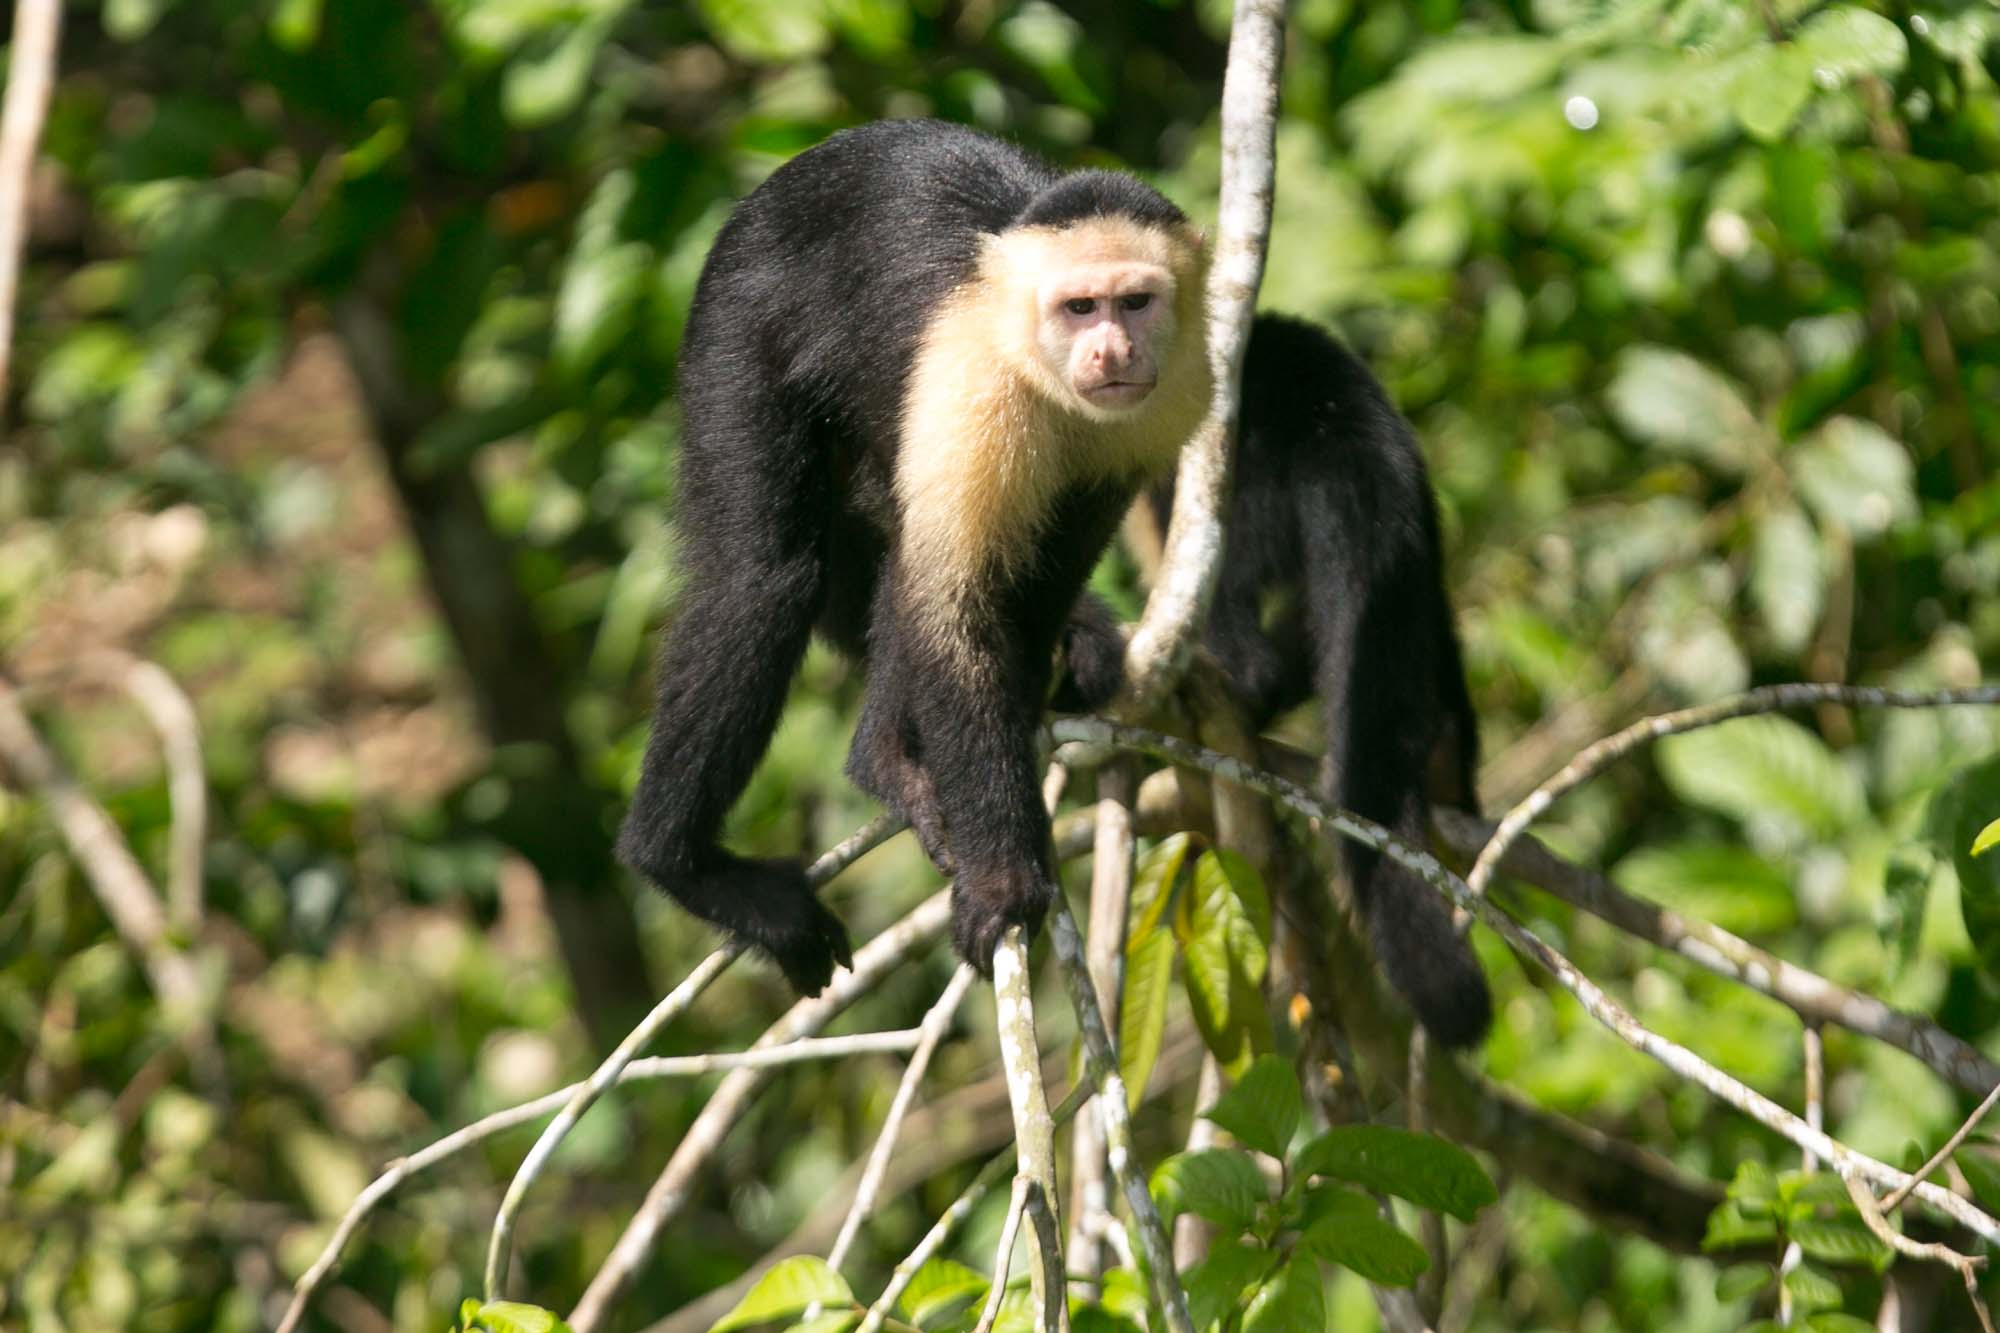 White faced capuchin on Monkey Island